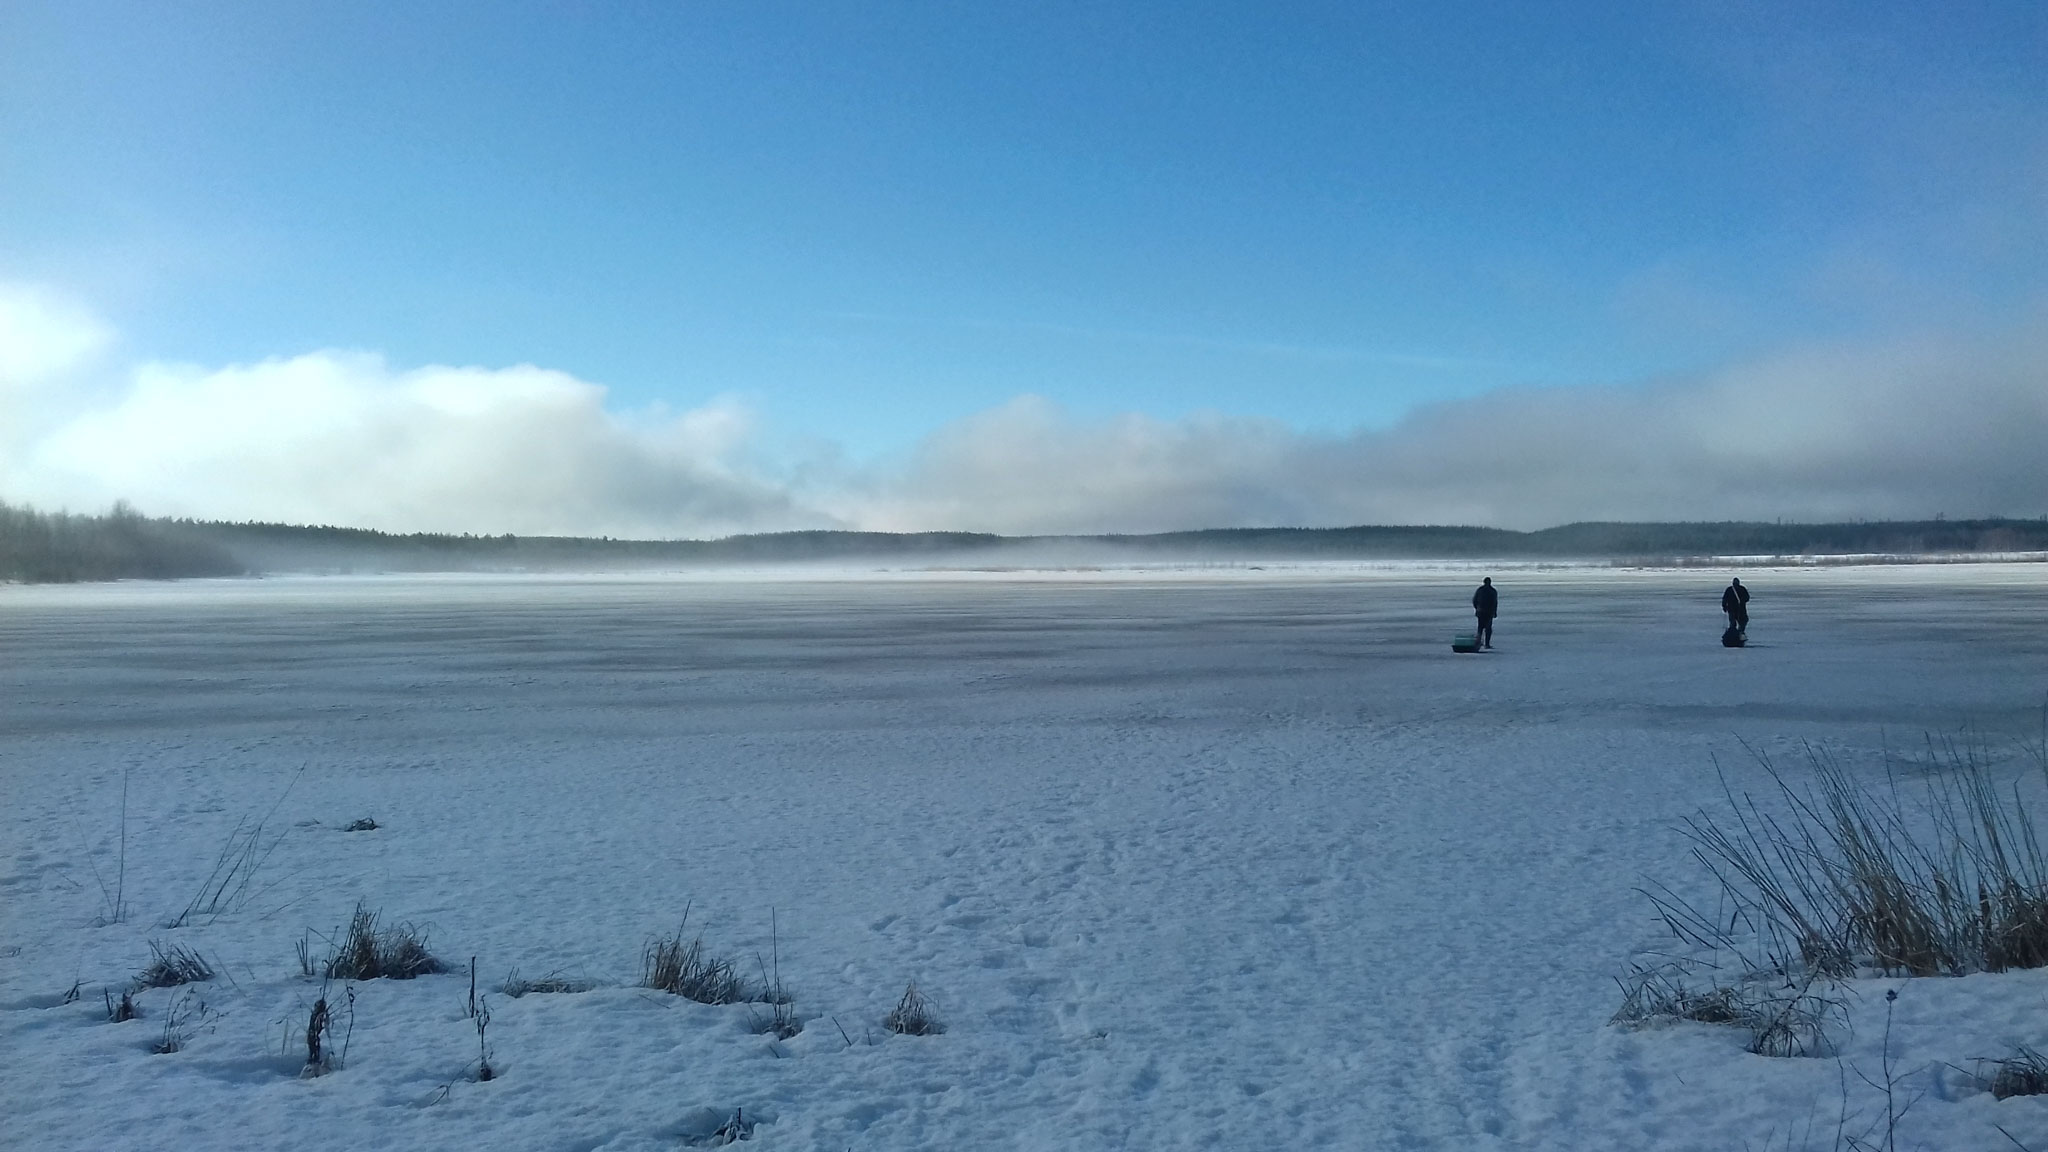 From January until July 2017, Marion Laventure and Antoine Scherer - two young researchers from the University of Lille in France - conducted an intensive investigation of both Linnunsuo wetland and the adjacent Jukajoki River in Finland.